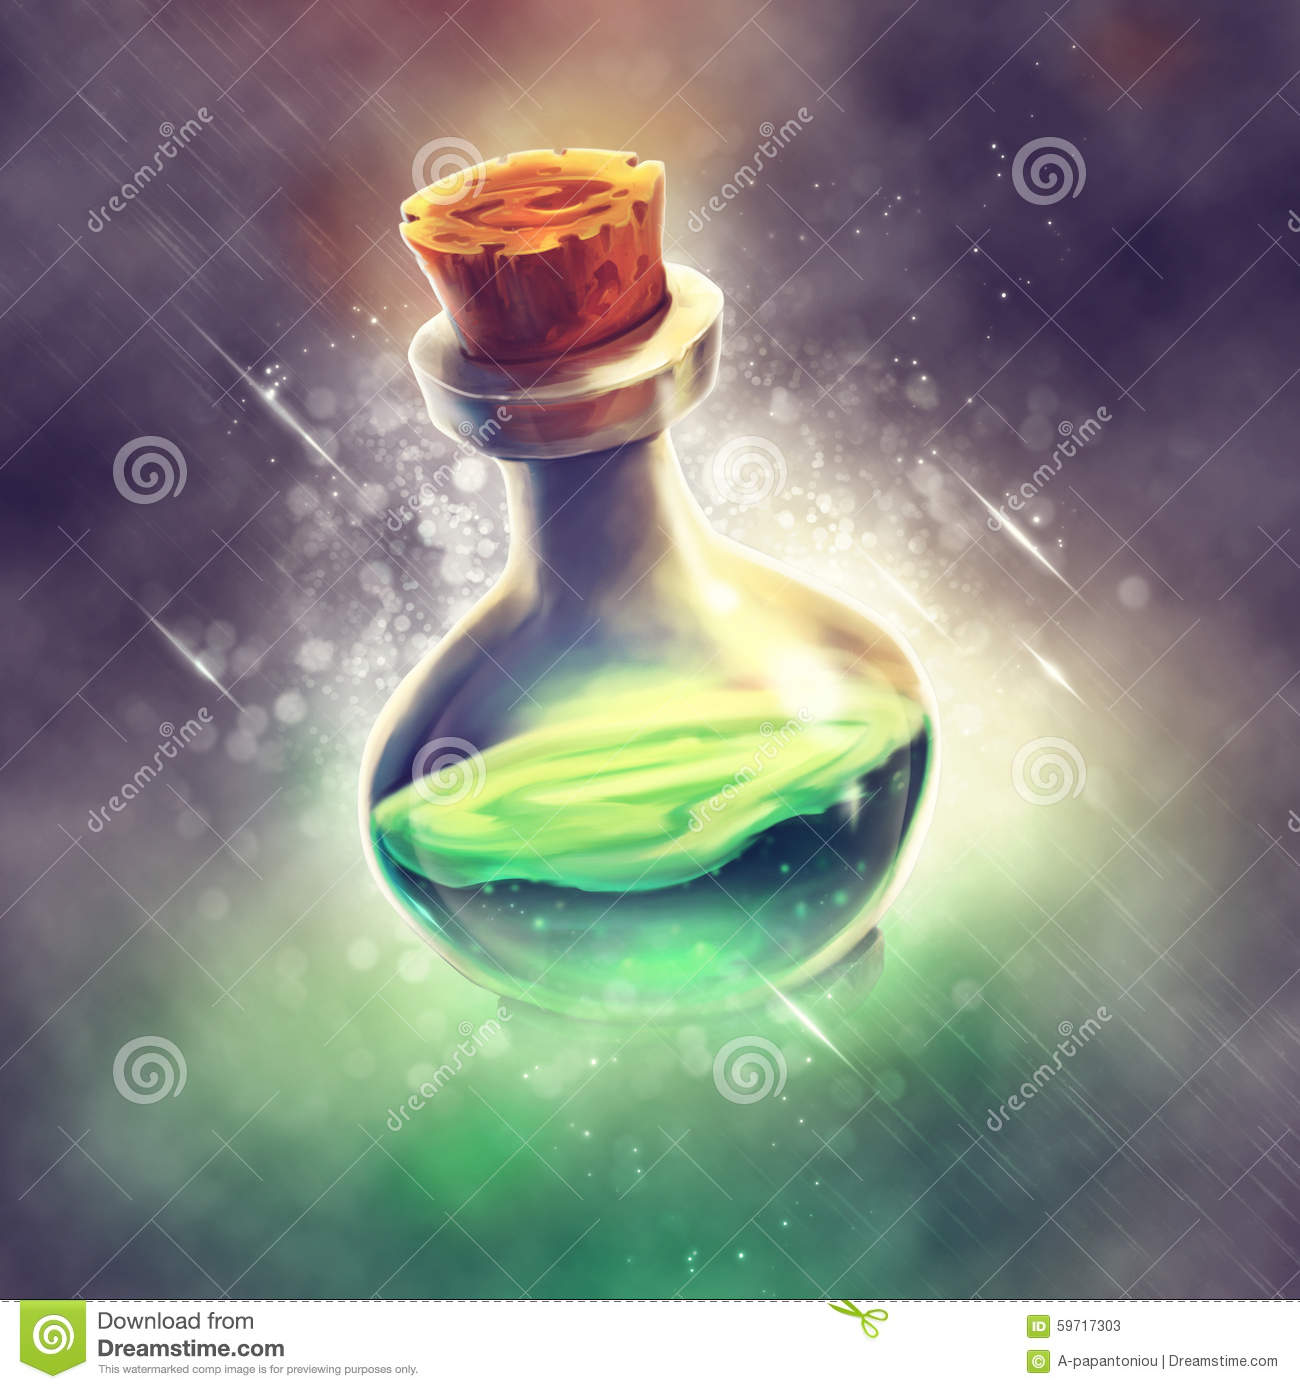 Cafe Tommy Montreal additionally Stock Illustration Green Potion Painting Magic Bottle Ideal Use As Ui Icon Game Symbol Apps Concept Painting Created Me Image59717303 likewise ersand sign furthermore Viewitem additionally Stock Images Frame Love Image27948544. on scandinavian design